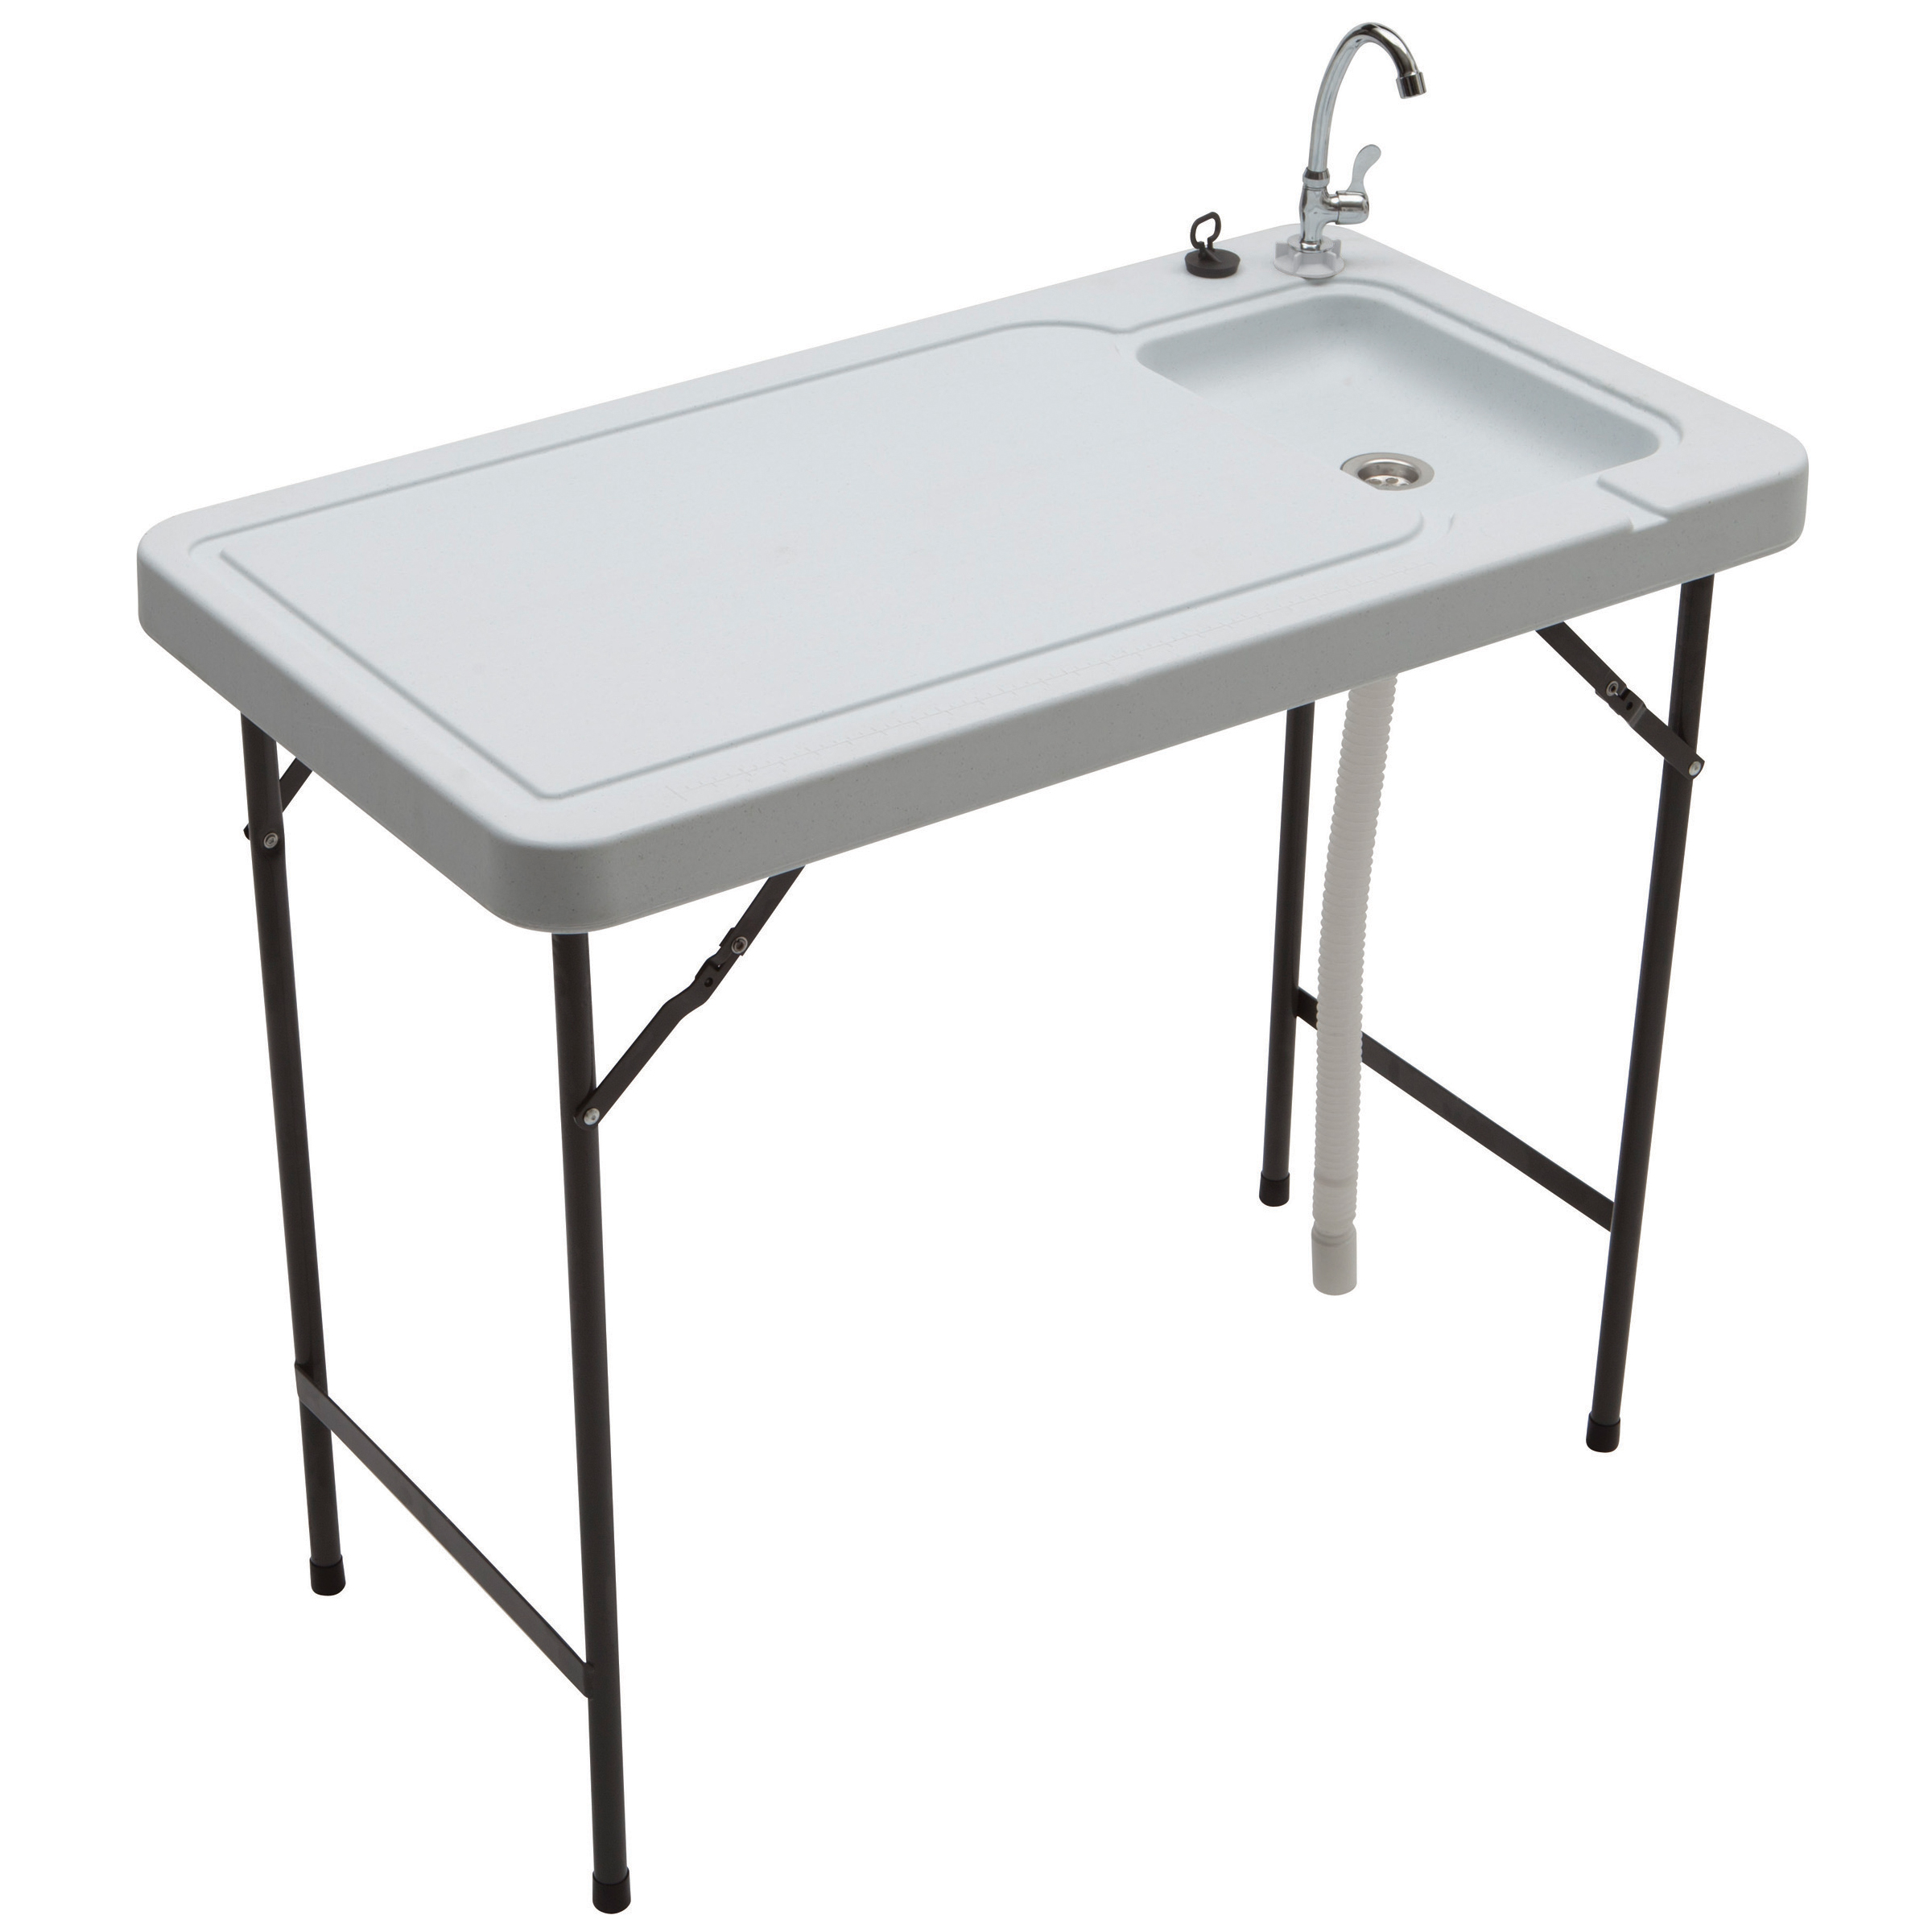 Stainless Steel Fish Cleaning Table With Sink Modern